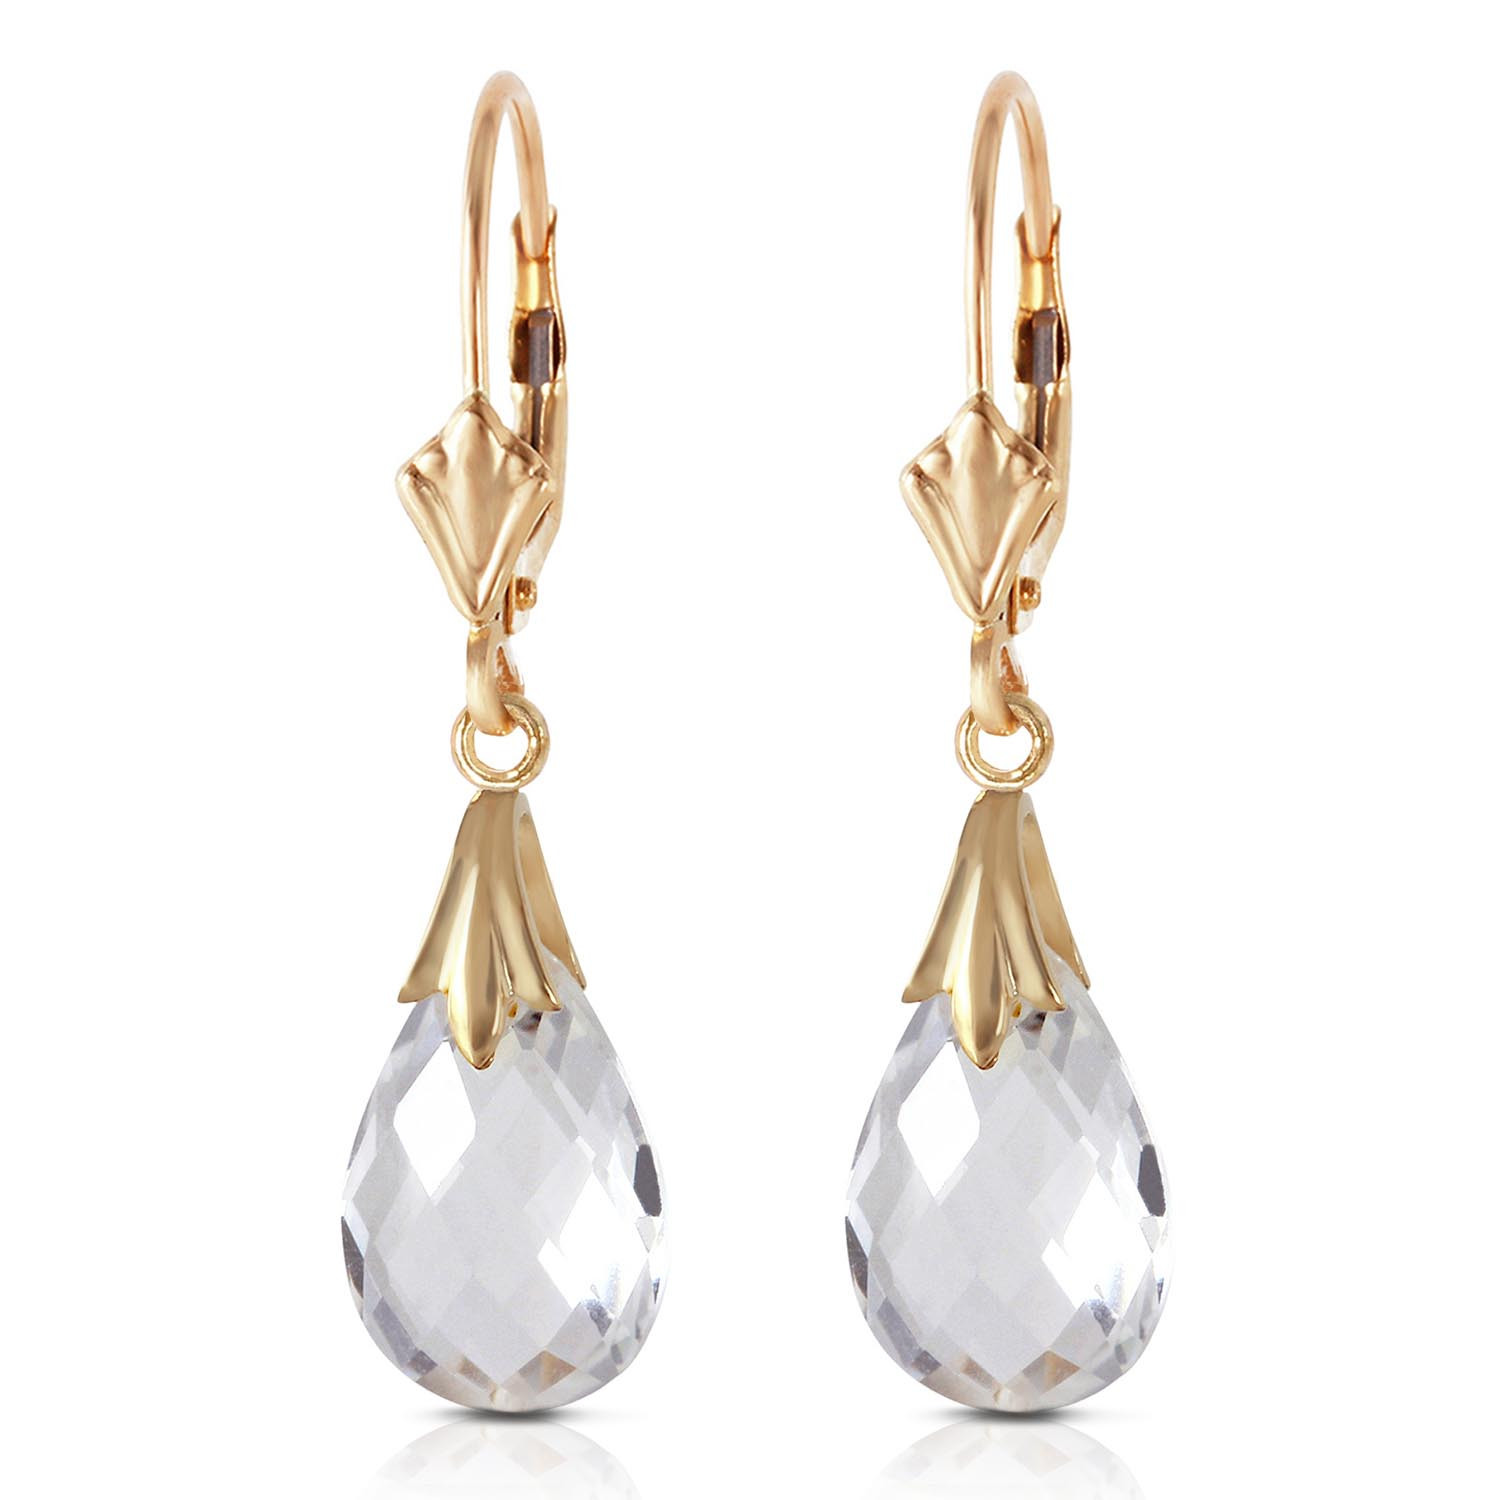 White Topaz Droplet Earrings 6 ctw in 9ct Gold